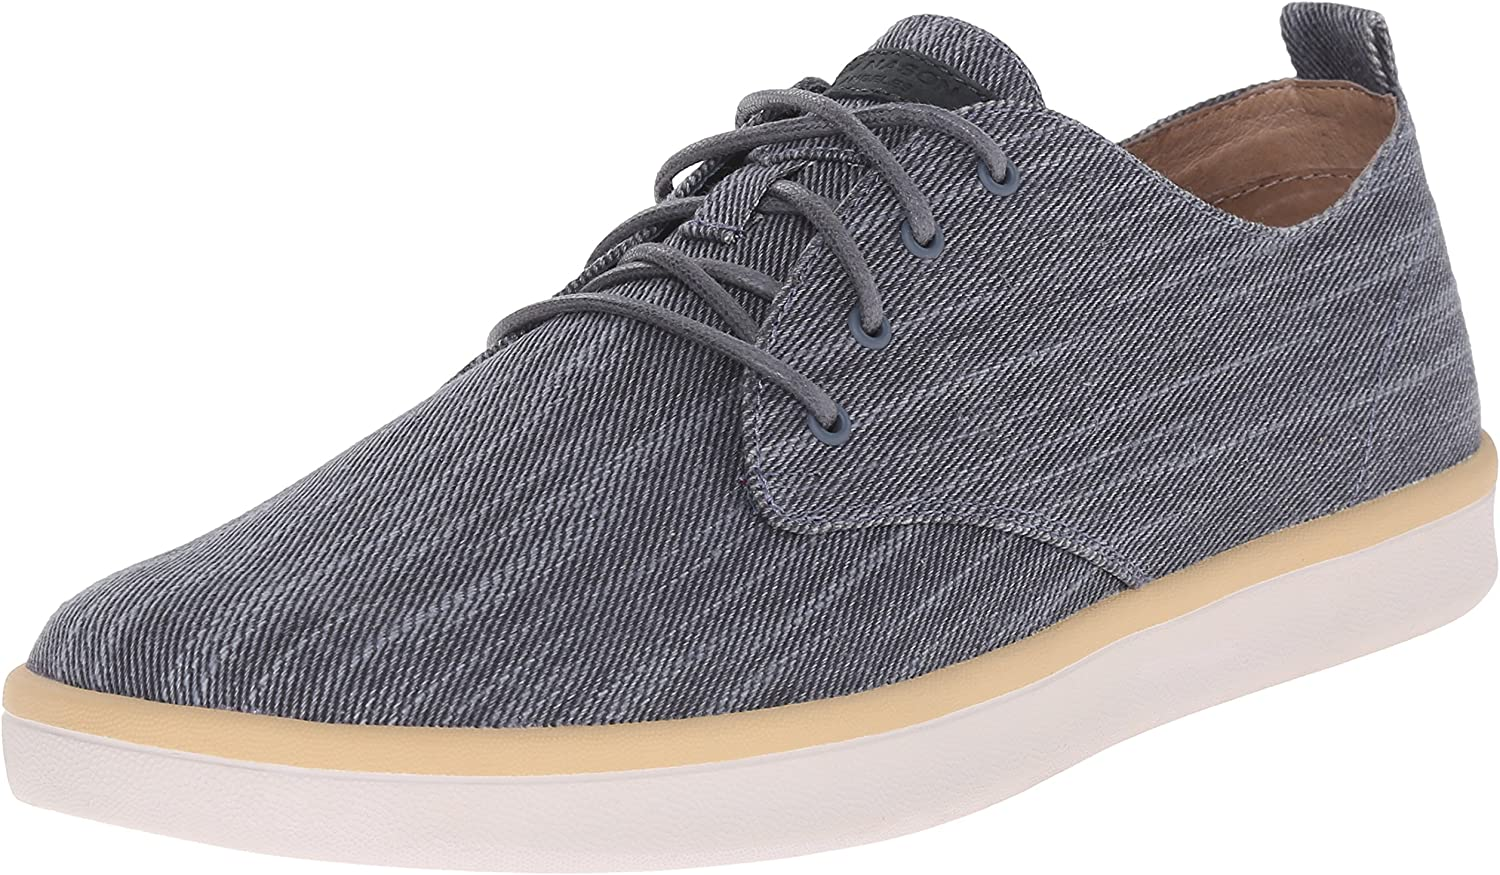 Mark Nason Los Angeles Men's Sycamore Fashion Sneaker